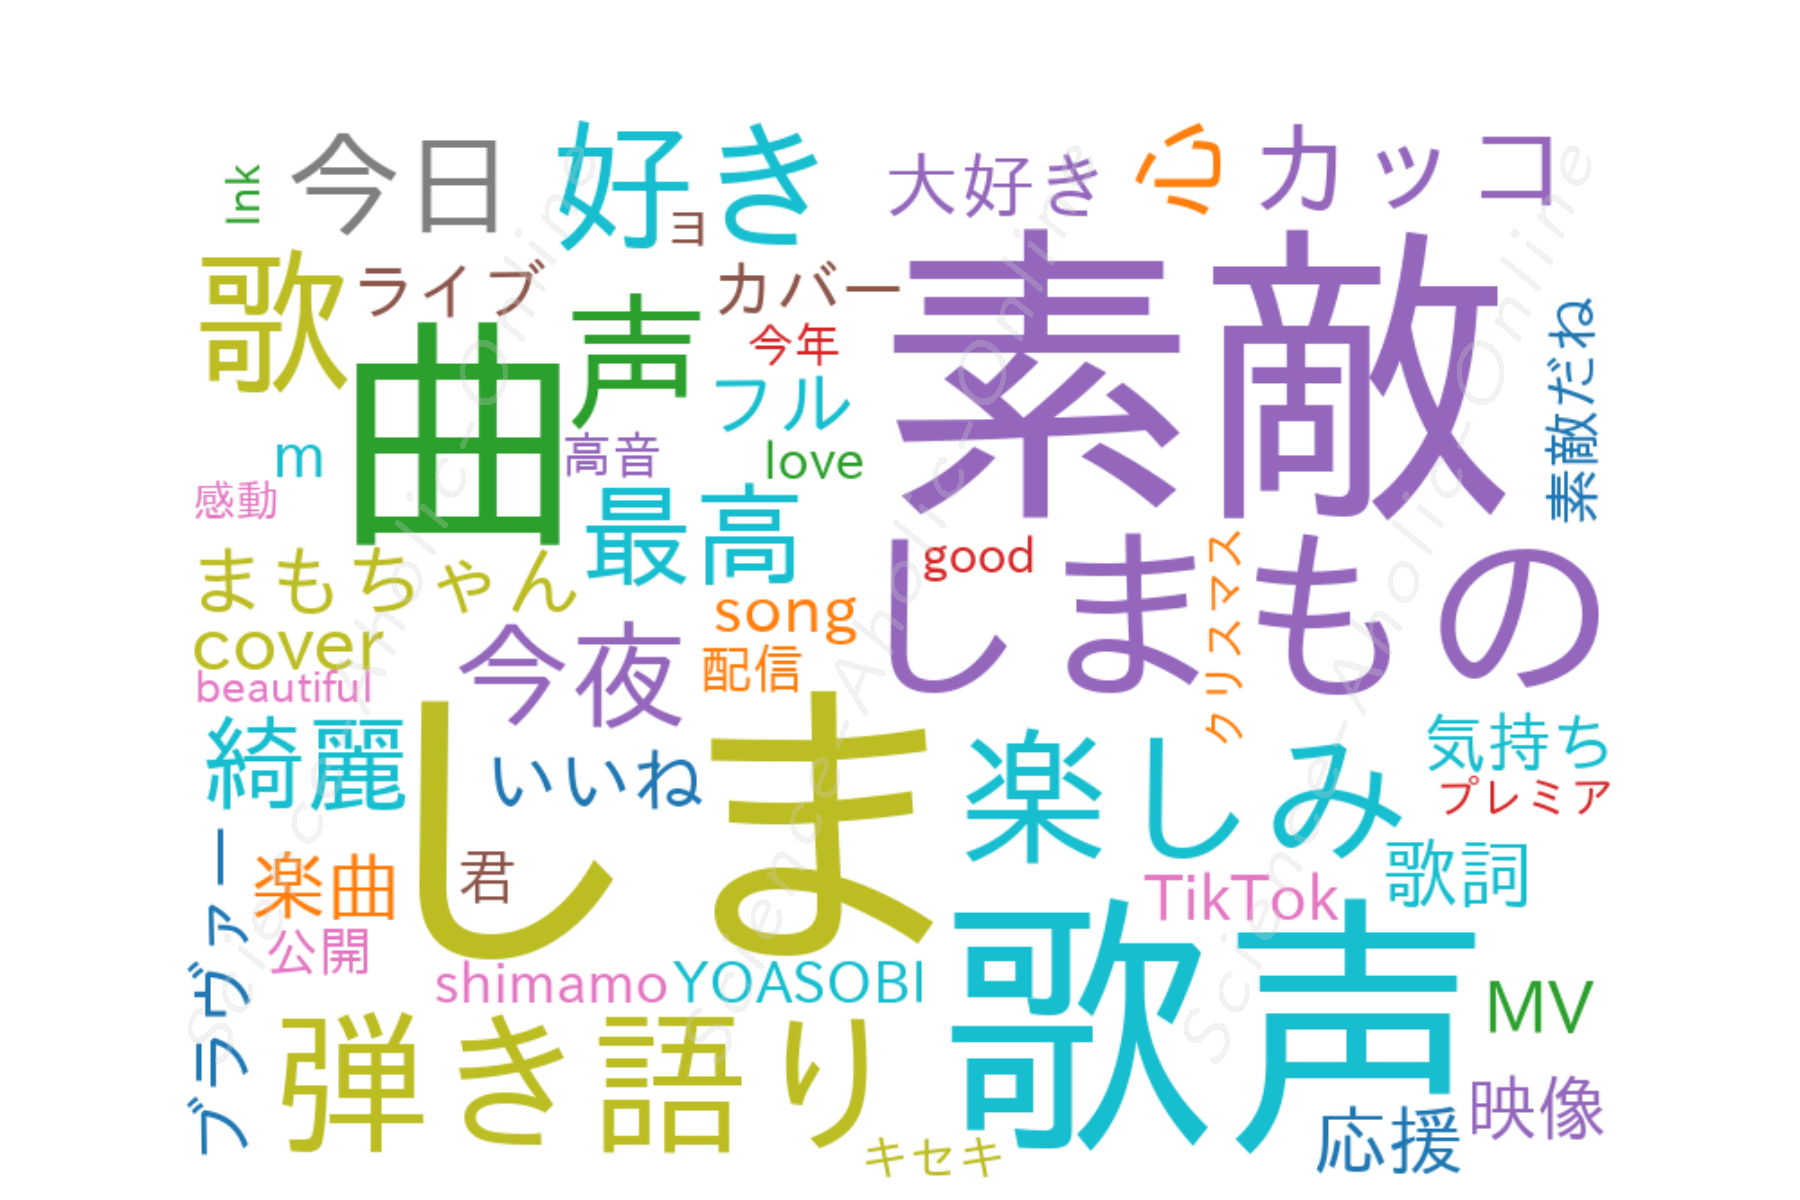 https://science-aholic-online.com/wp-content/uploads/2020/08/wordcloud_しまも.png